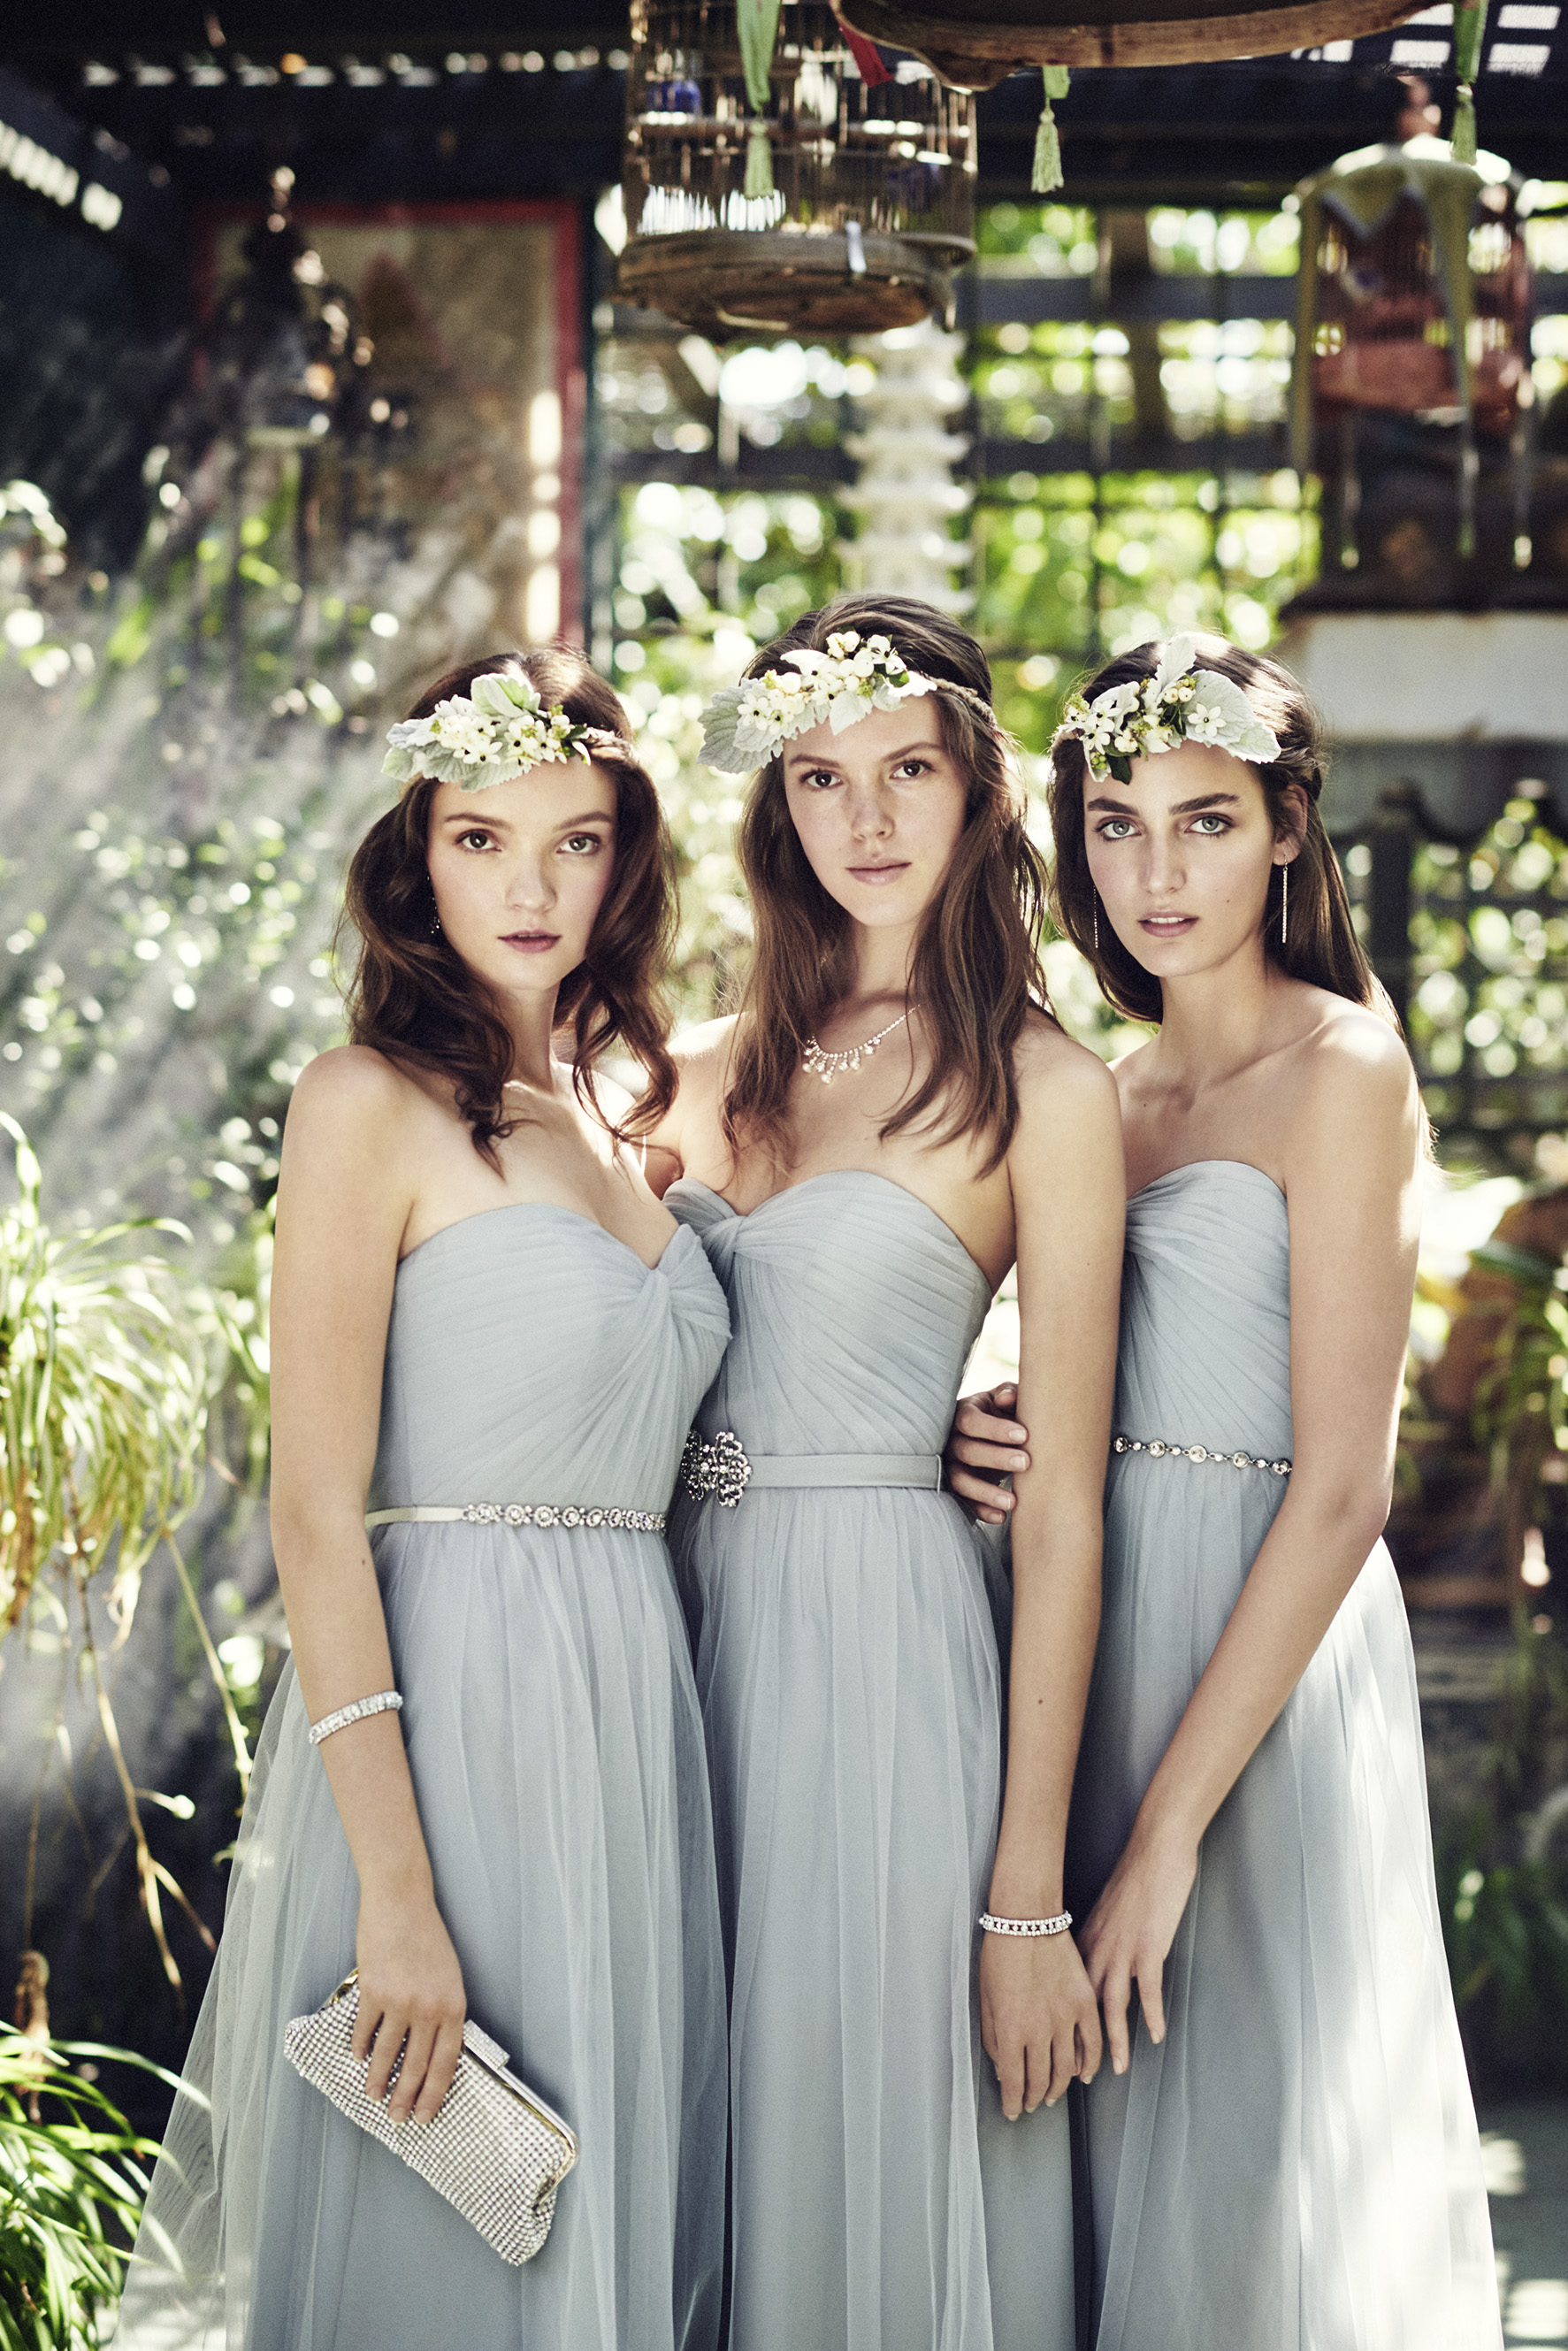 Here they are 2016s top bridesmaid dress trends soft colorspastels ombrellifo Image collections